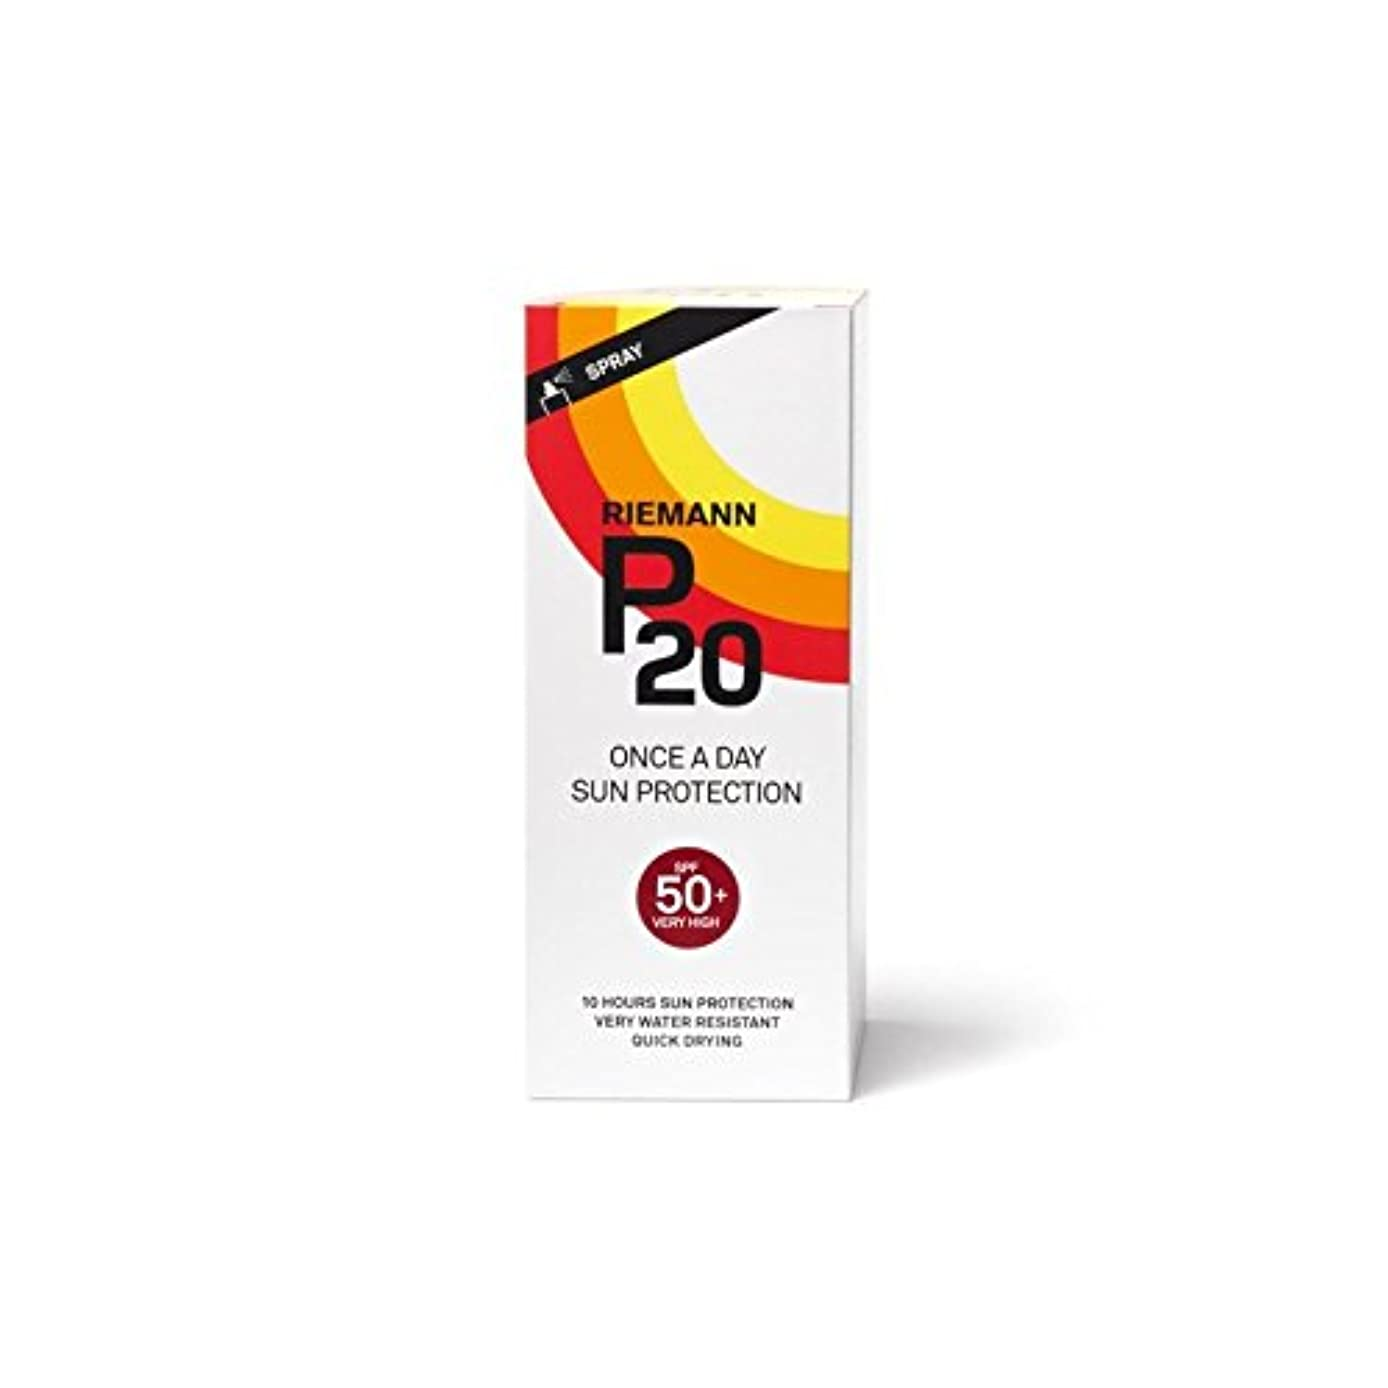 Riemann P20 Once a Day Sun Filter 200ml SPF50+ (Pack of 6) - 一日の日に一度リーマン20は、200ミリリットル50 +のをフィルタリング x6 [並行輸入品]